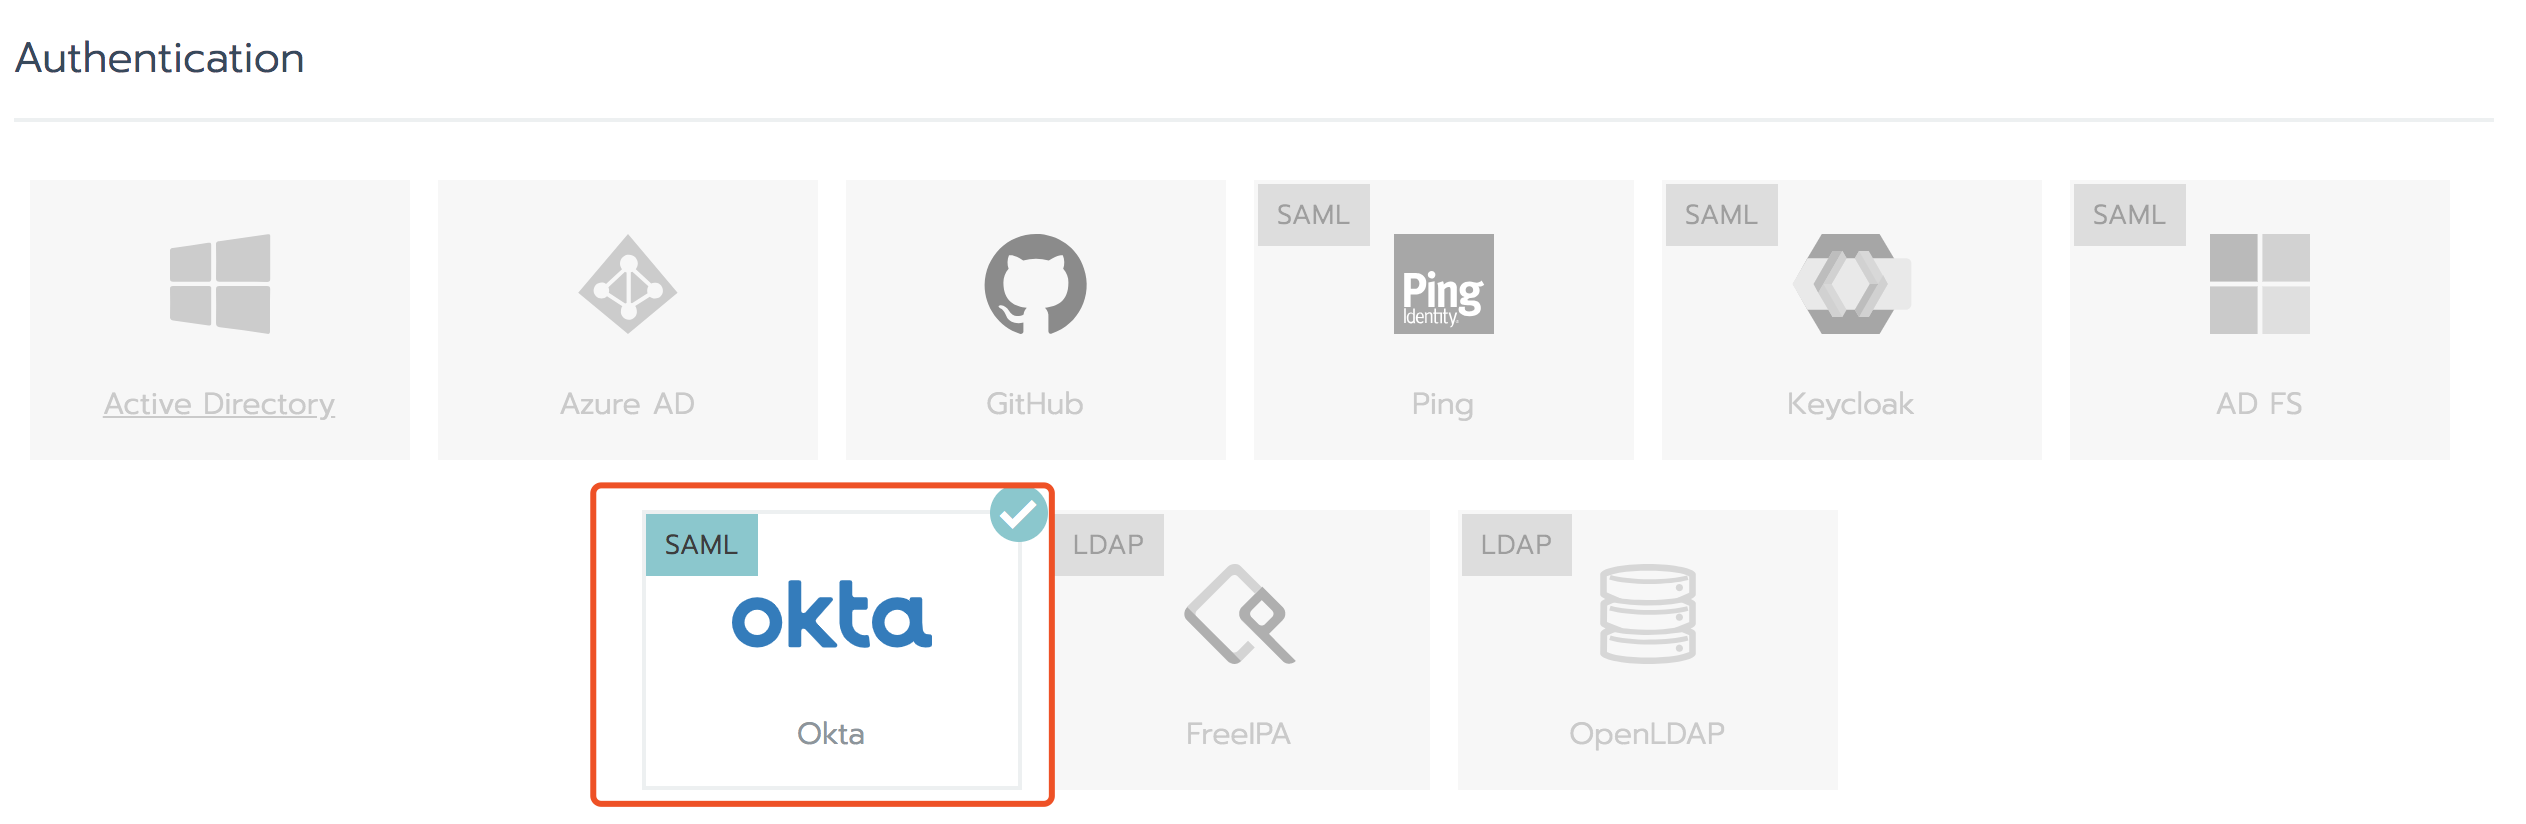 Support Okta as a SAML auth provider · Issue #15574